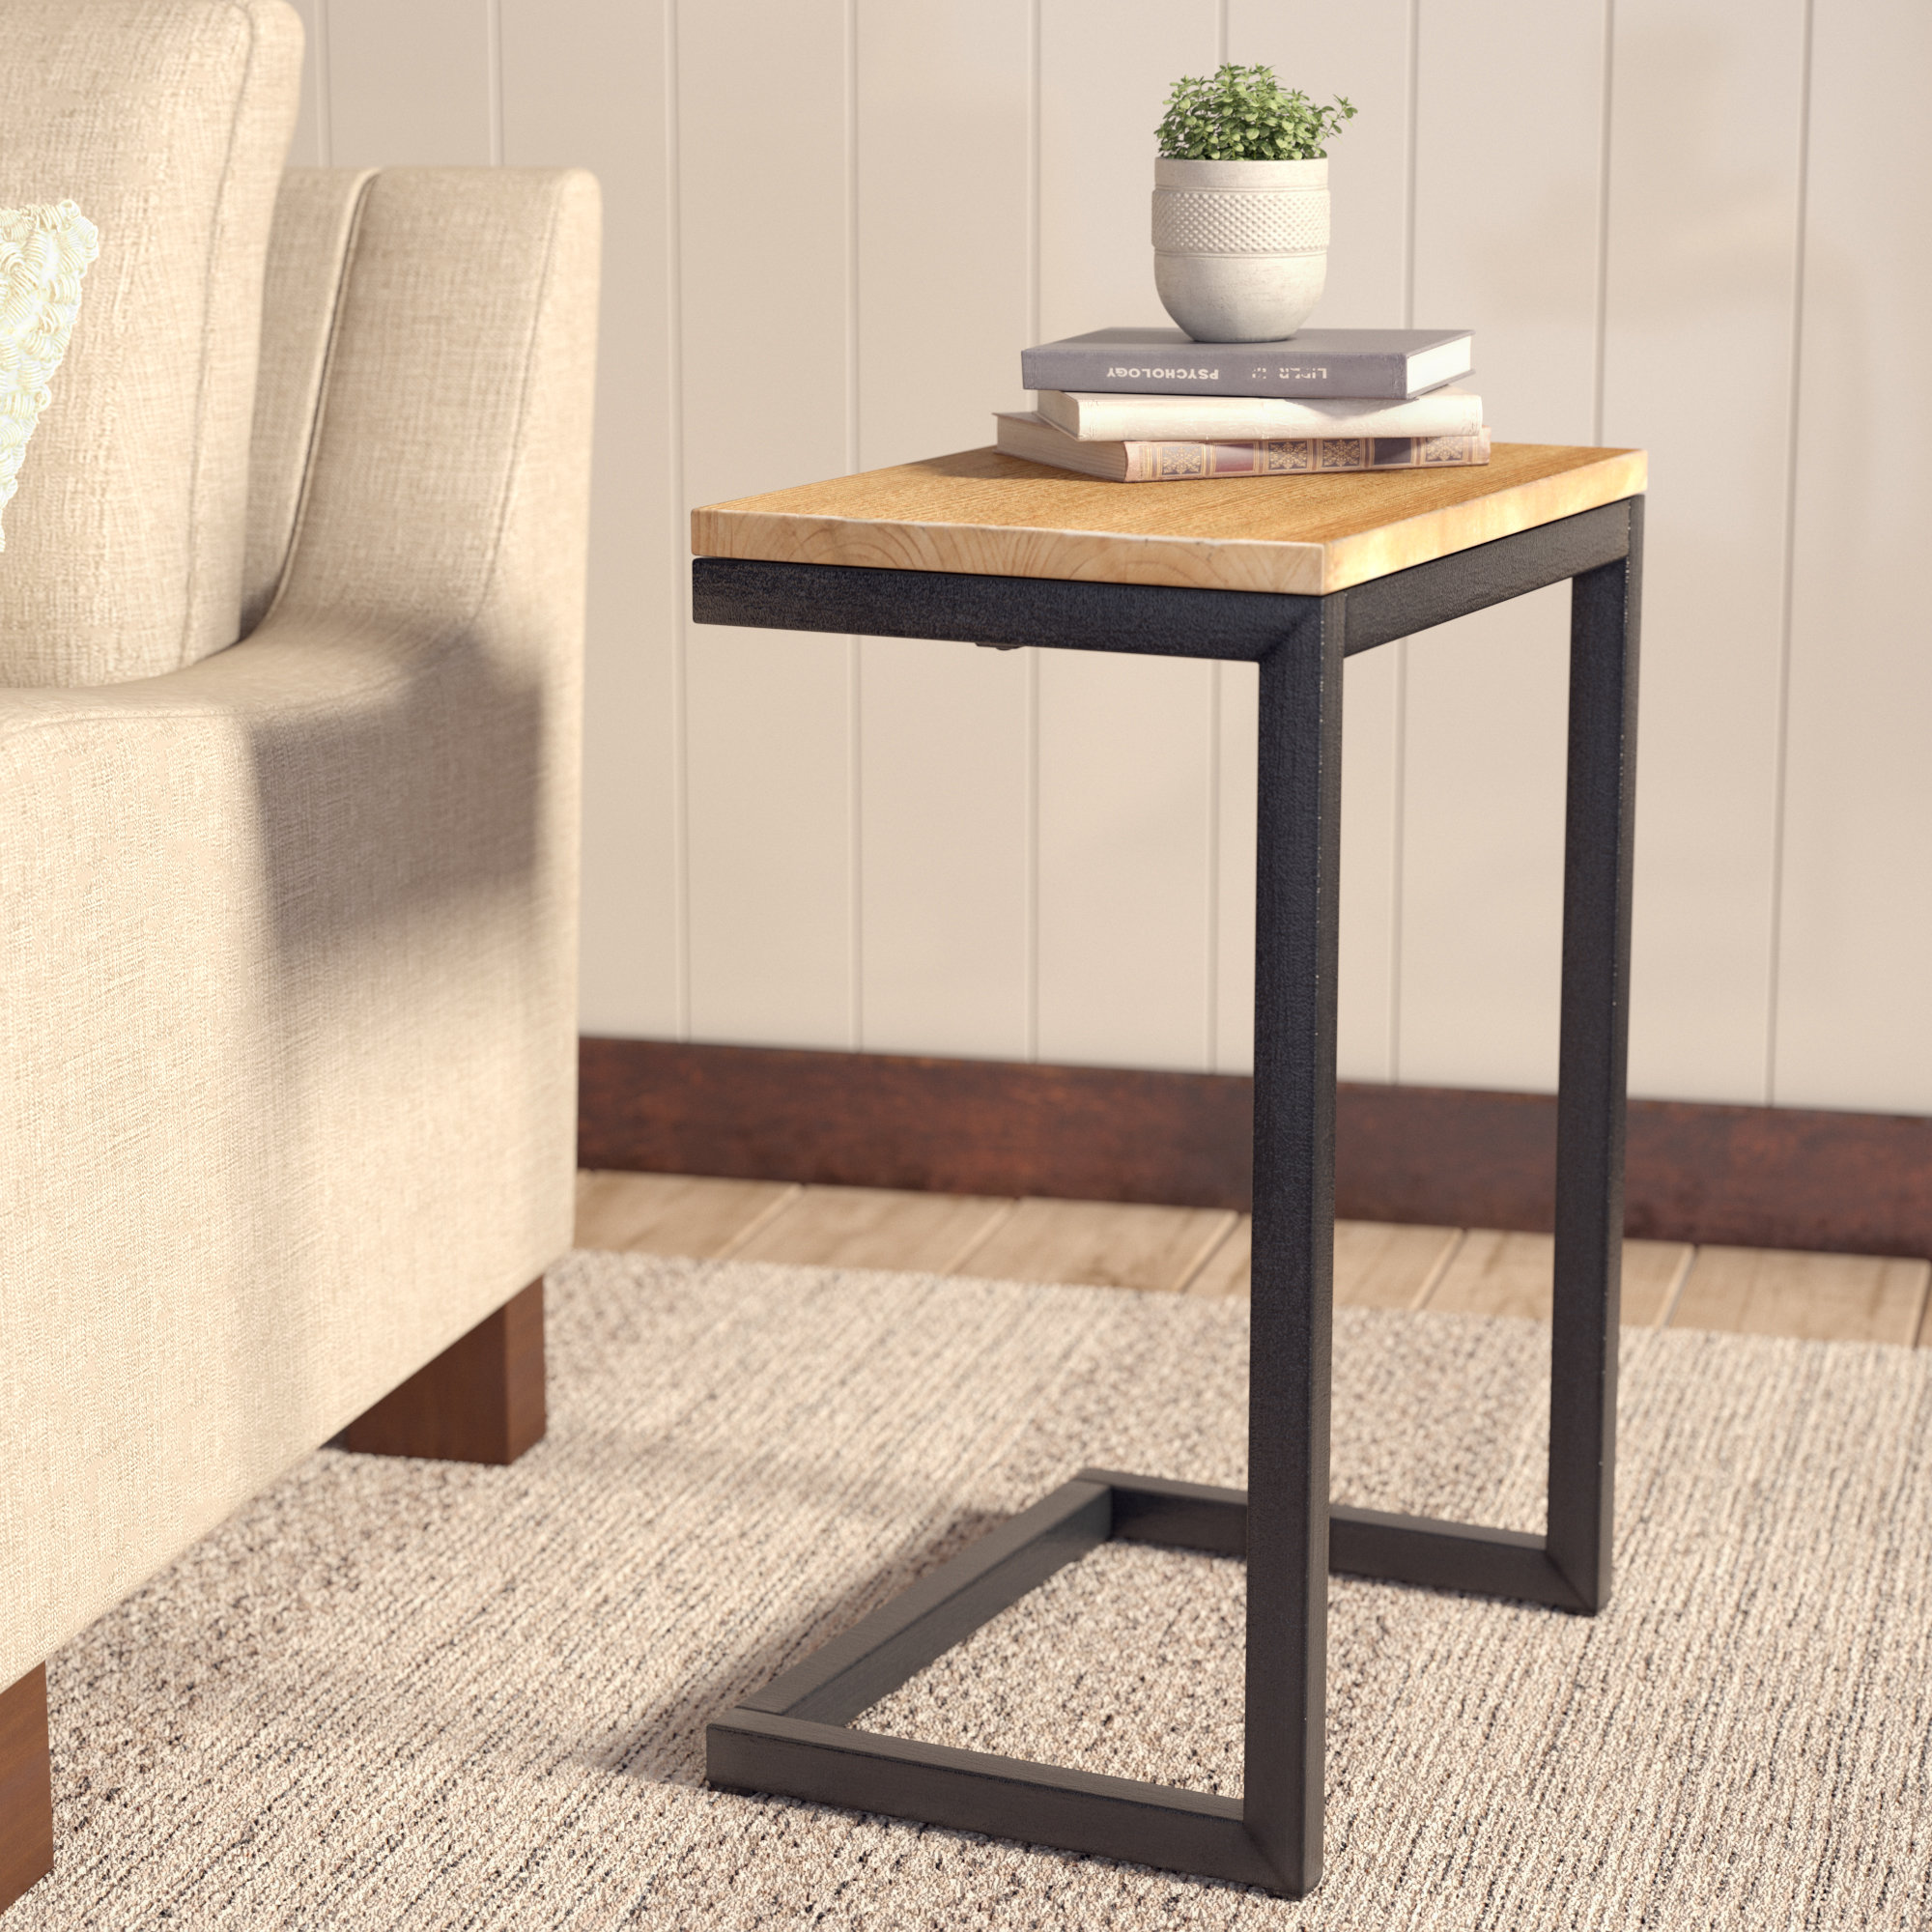 laurel foundry modern farmhouse nayara antique end table reviews wooden accent tall skinny lamps bathroom wardrobe target mirrored scandinavian side black lacquer furniture